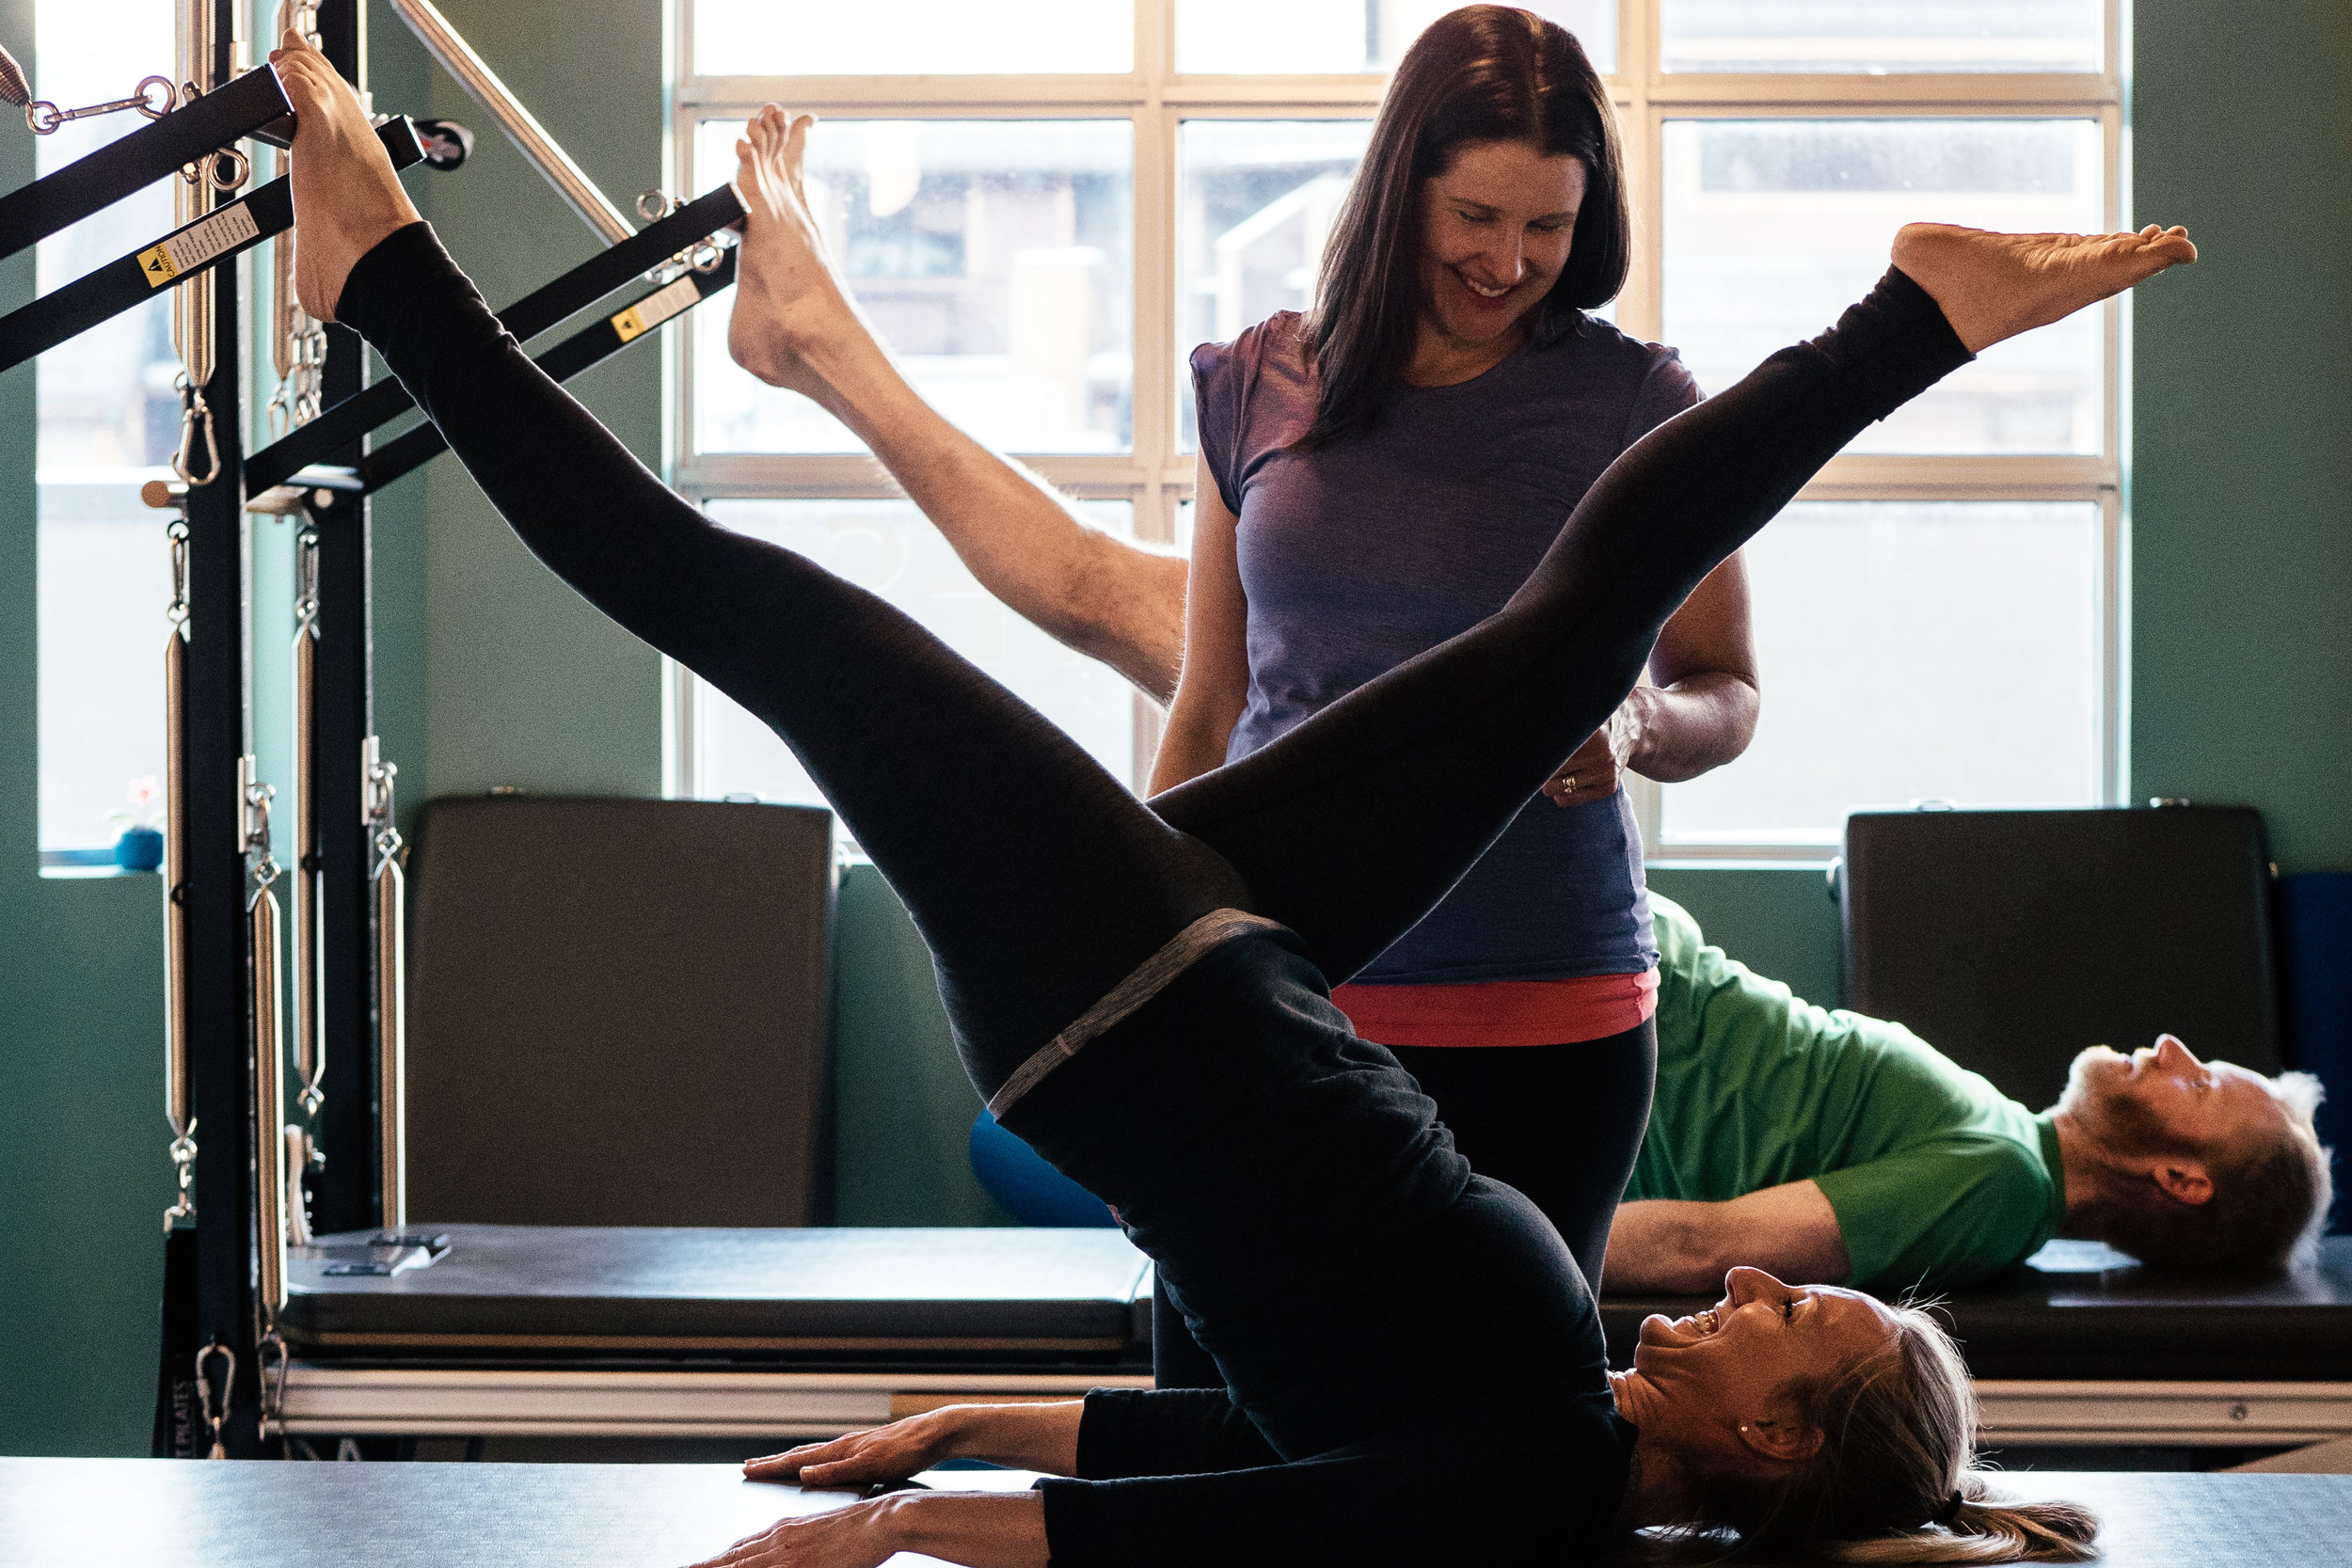 Private Pilates session at Four Peaks Pilates, Canmore